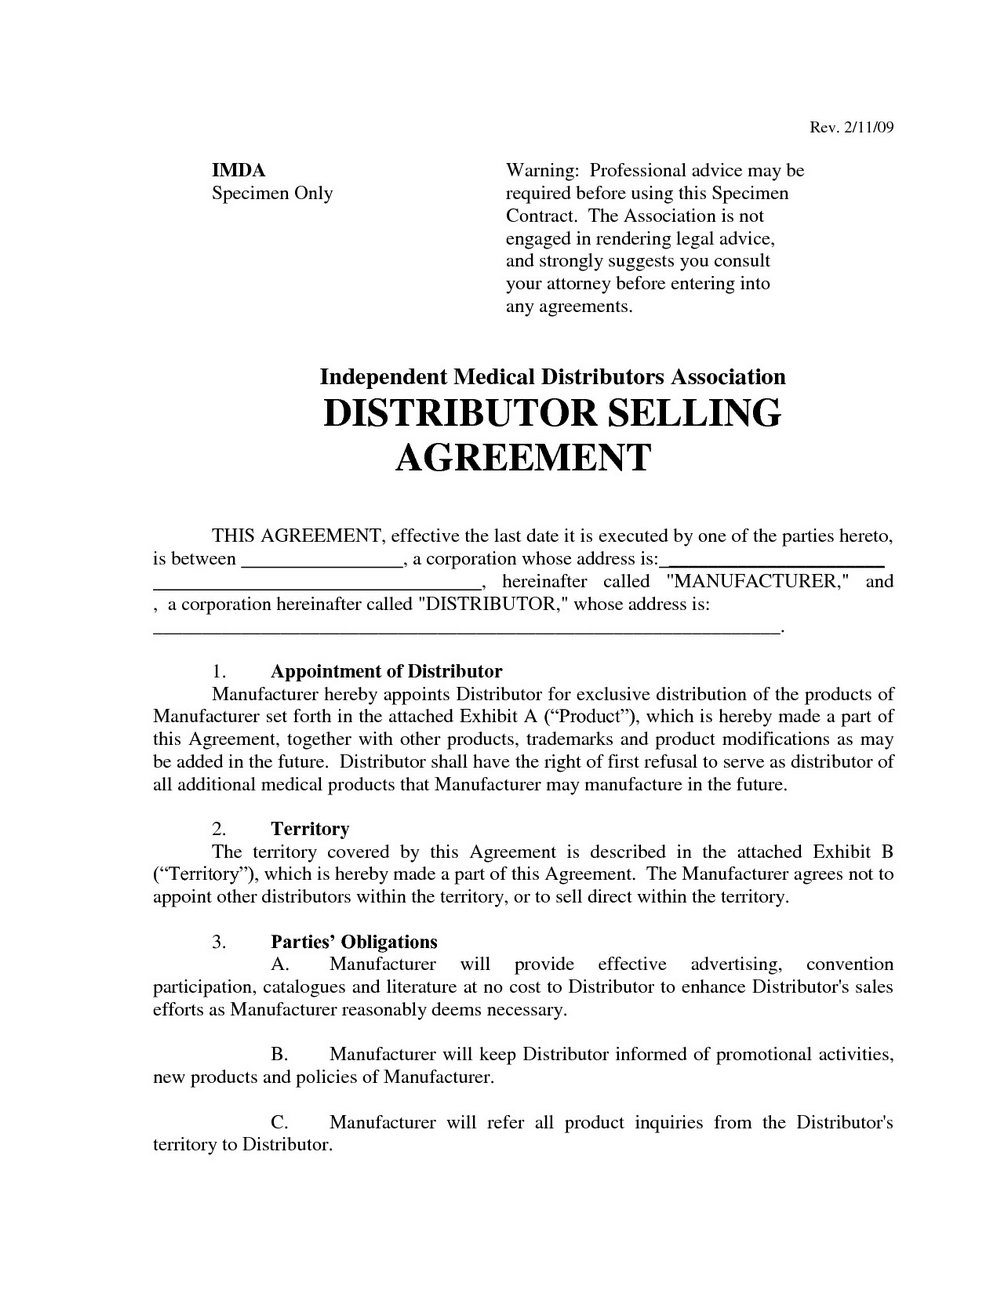 Distribution Agreement Template